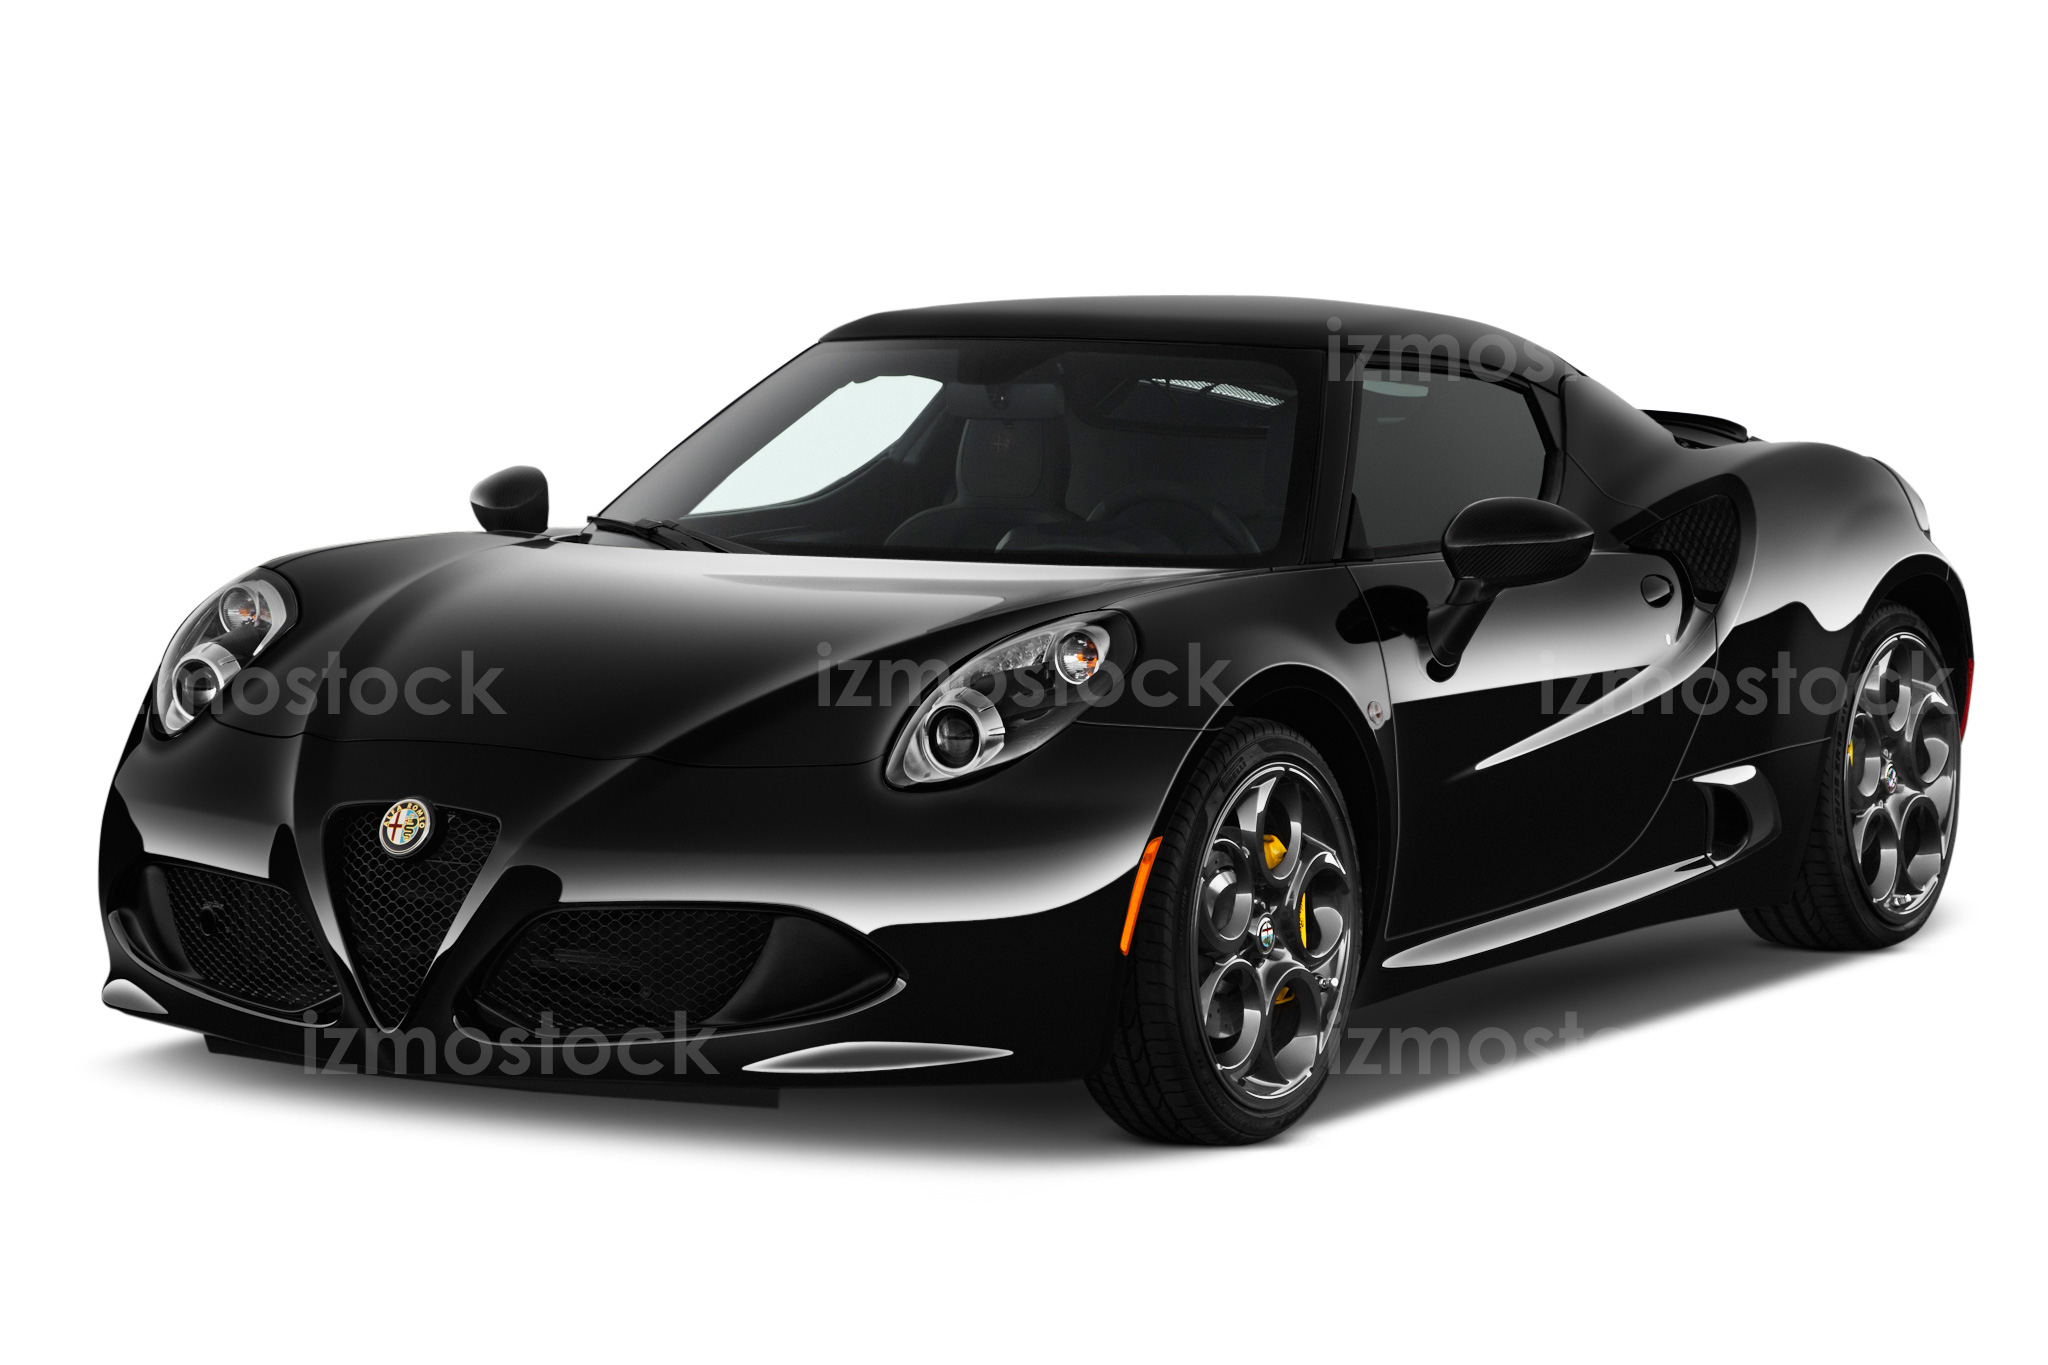 2016 Alfa Romeo 4C Coupe: Affordable Track-Ready Sports Car